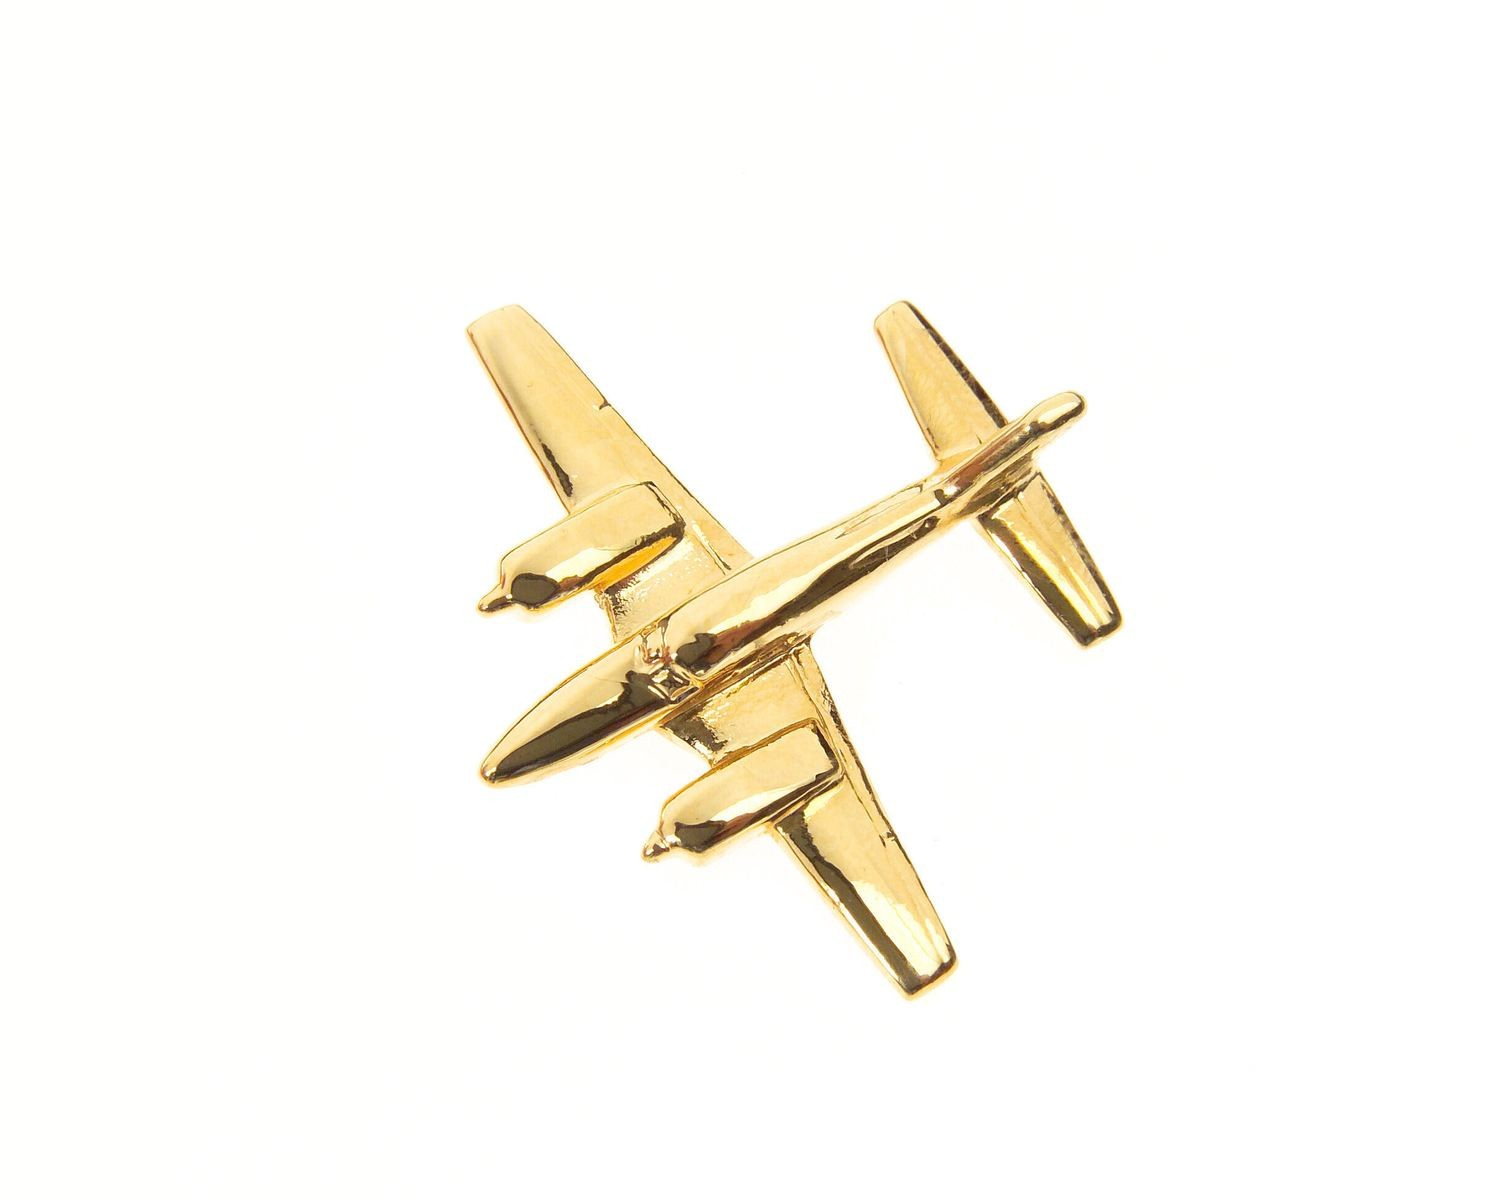 Piper Navajo Gold Plated Tie / Lapel Pin